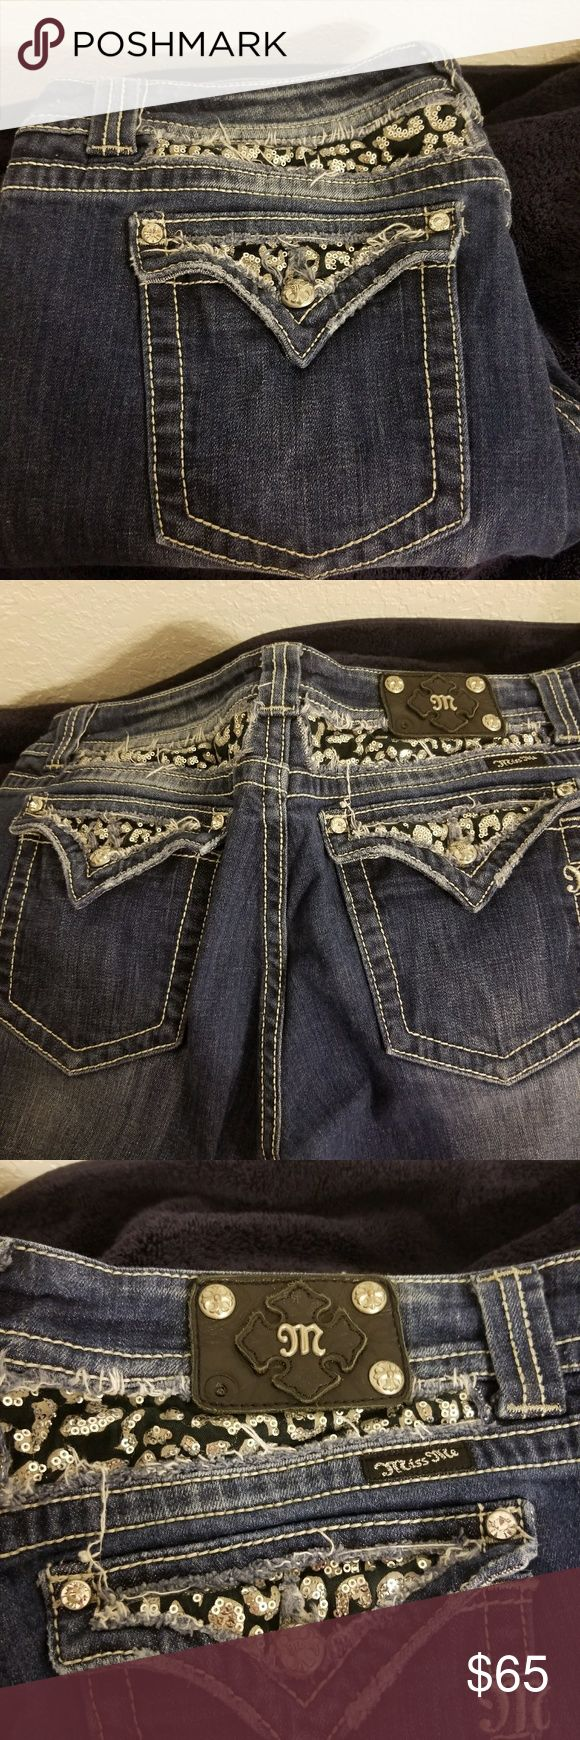 Miss Me capris size 36 Plus Size Miss Me capris  Size 36 Inseam 21 Easy Capri  Missing one rivet on back logo (photo 3) Open to reasonable offers Miss me Jeans Ankle & Cropped